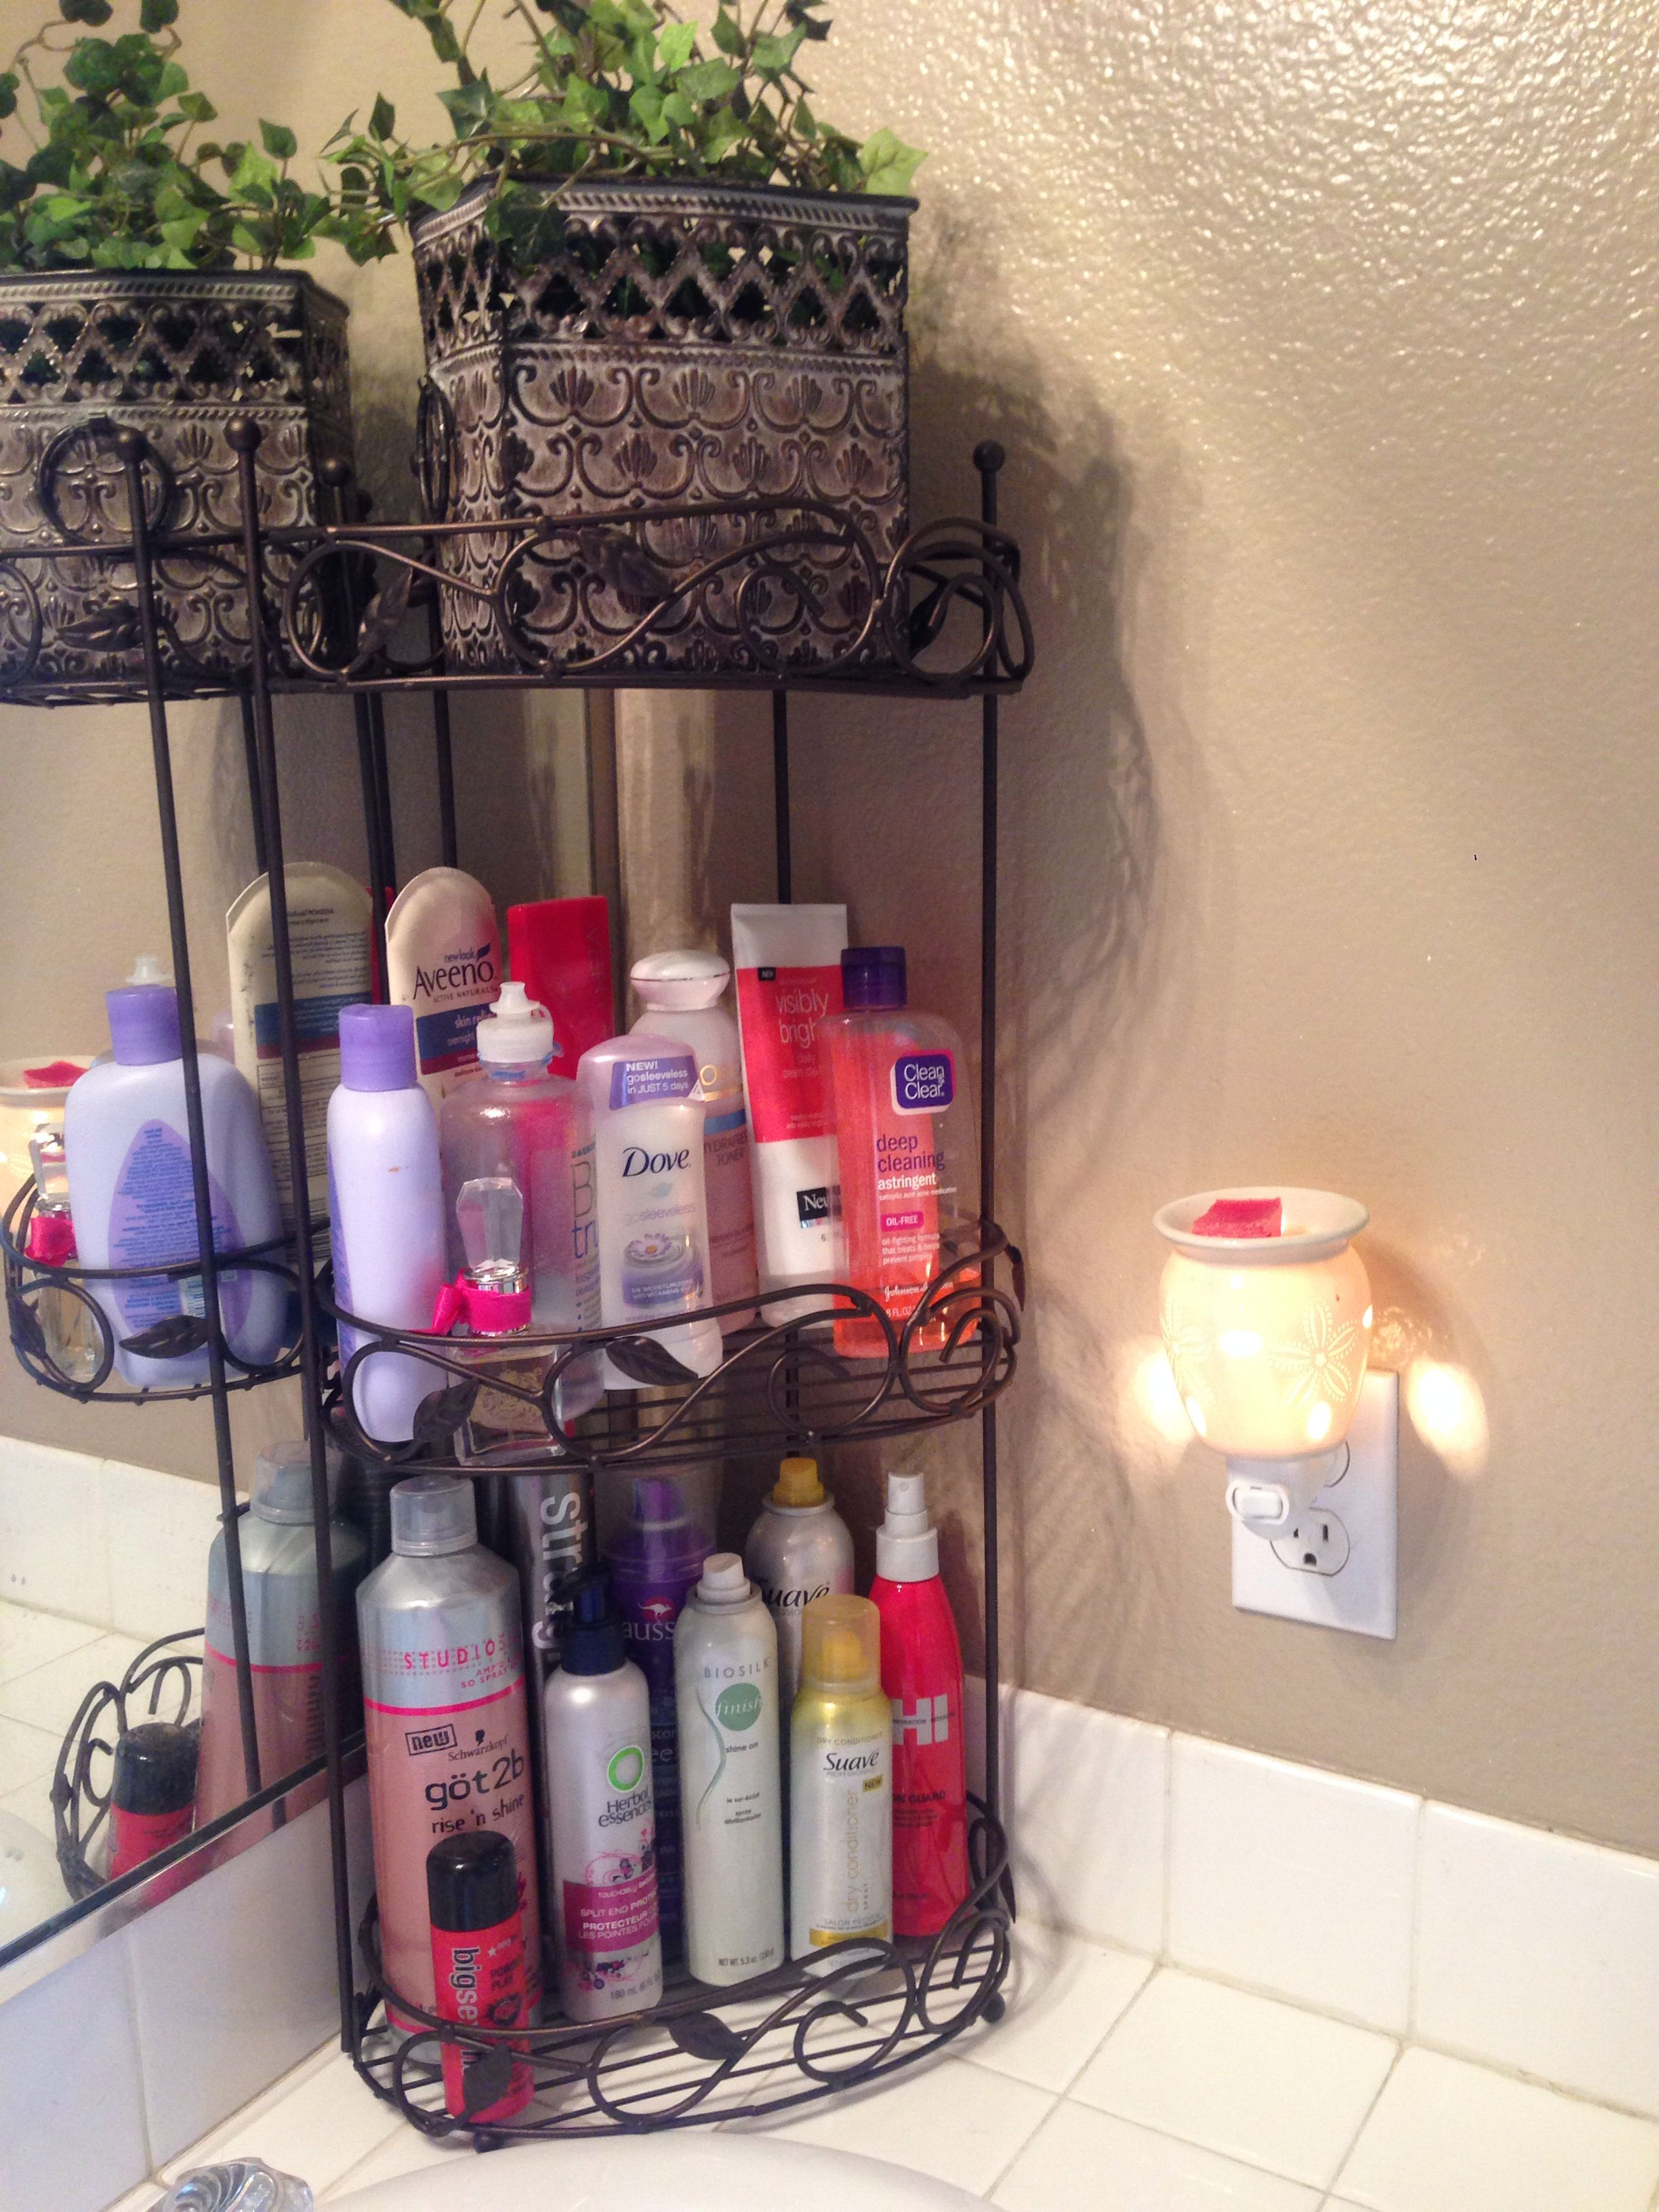 Shower Caddy To Clear Up Bathroom Counter Clutter! Simple And Cheap Just  $10 From Ross